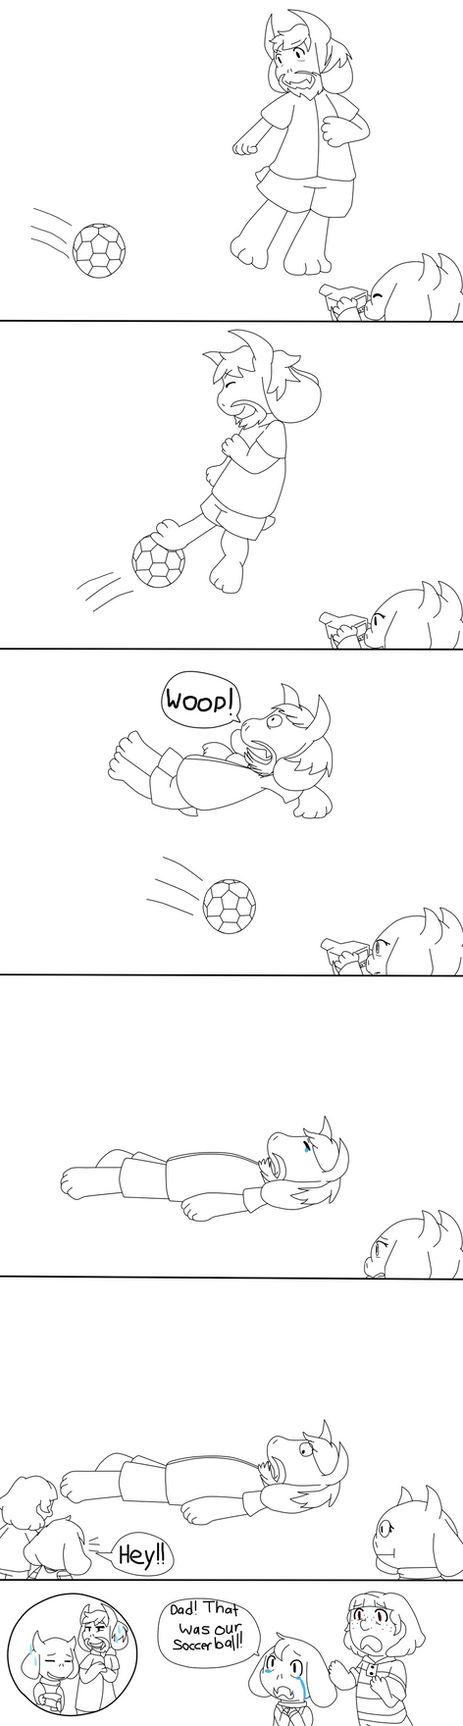 [Undertale] Asgore the Ball Buster by poi-rozen